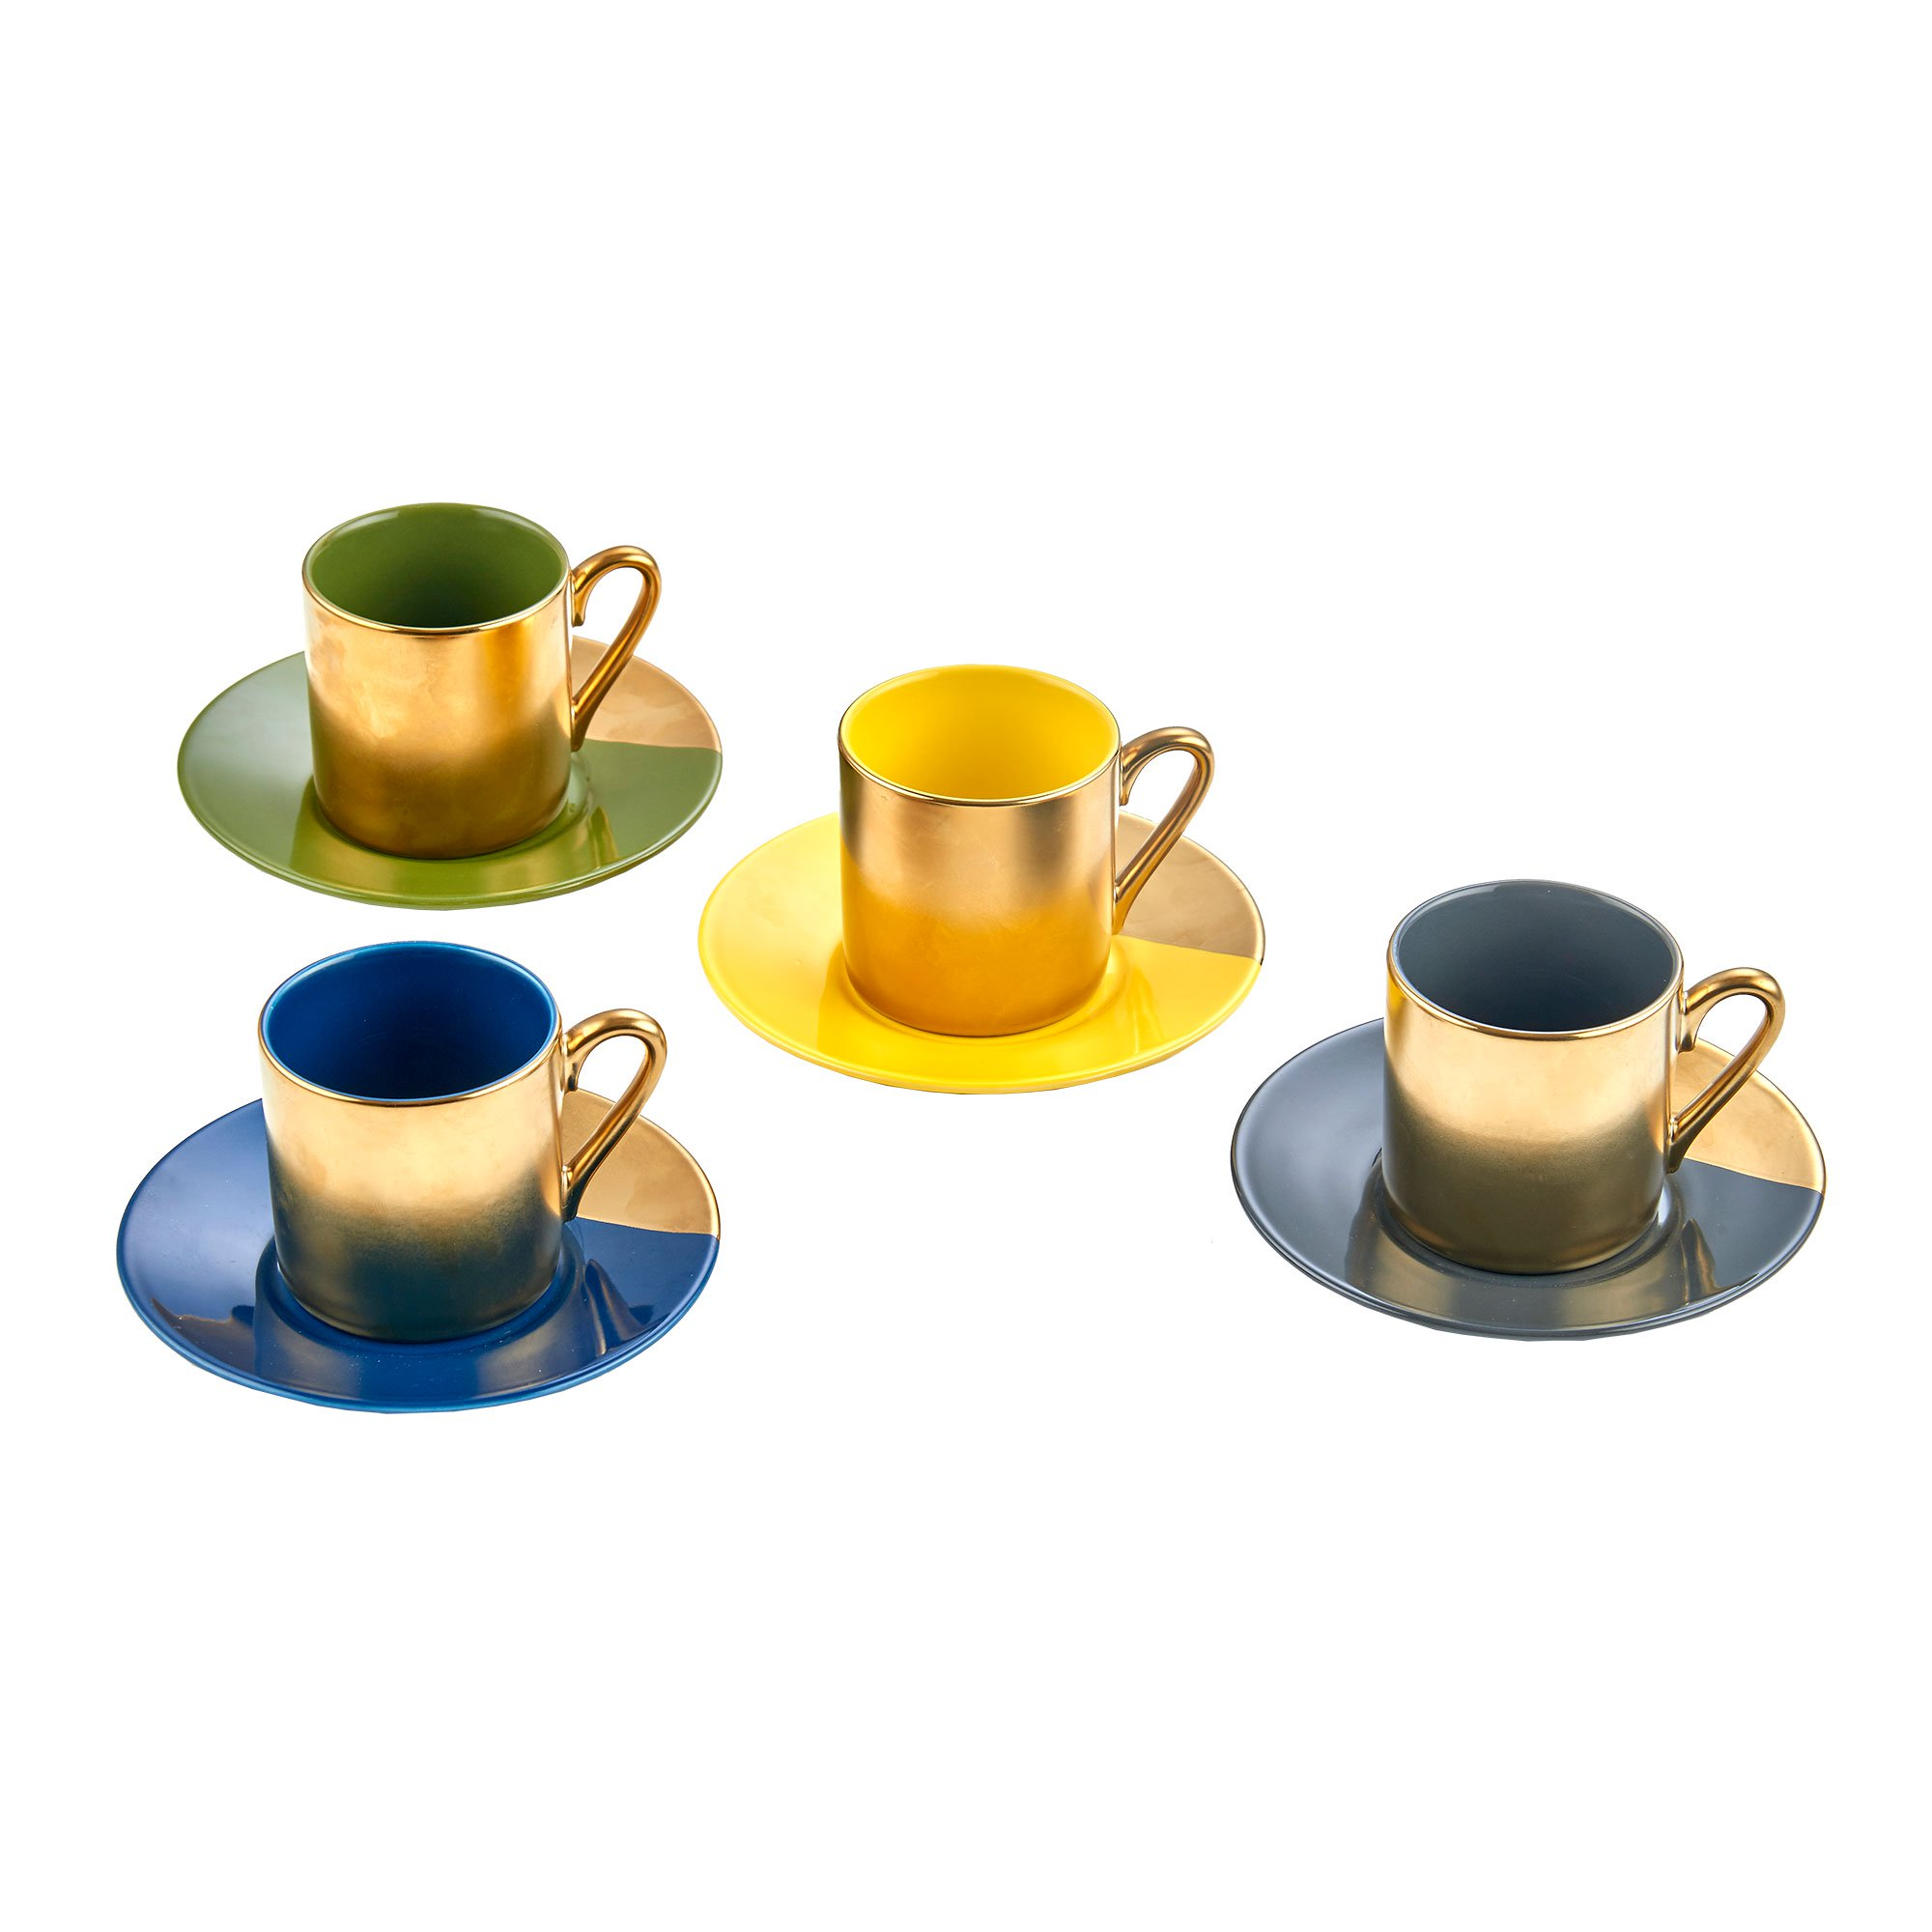 Yedi Houseware Classic Coffee and Tea Pastel & Gold Cups and Saucers, Set of 4